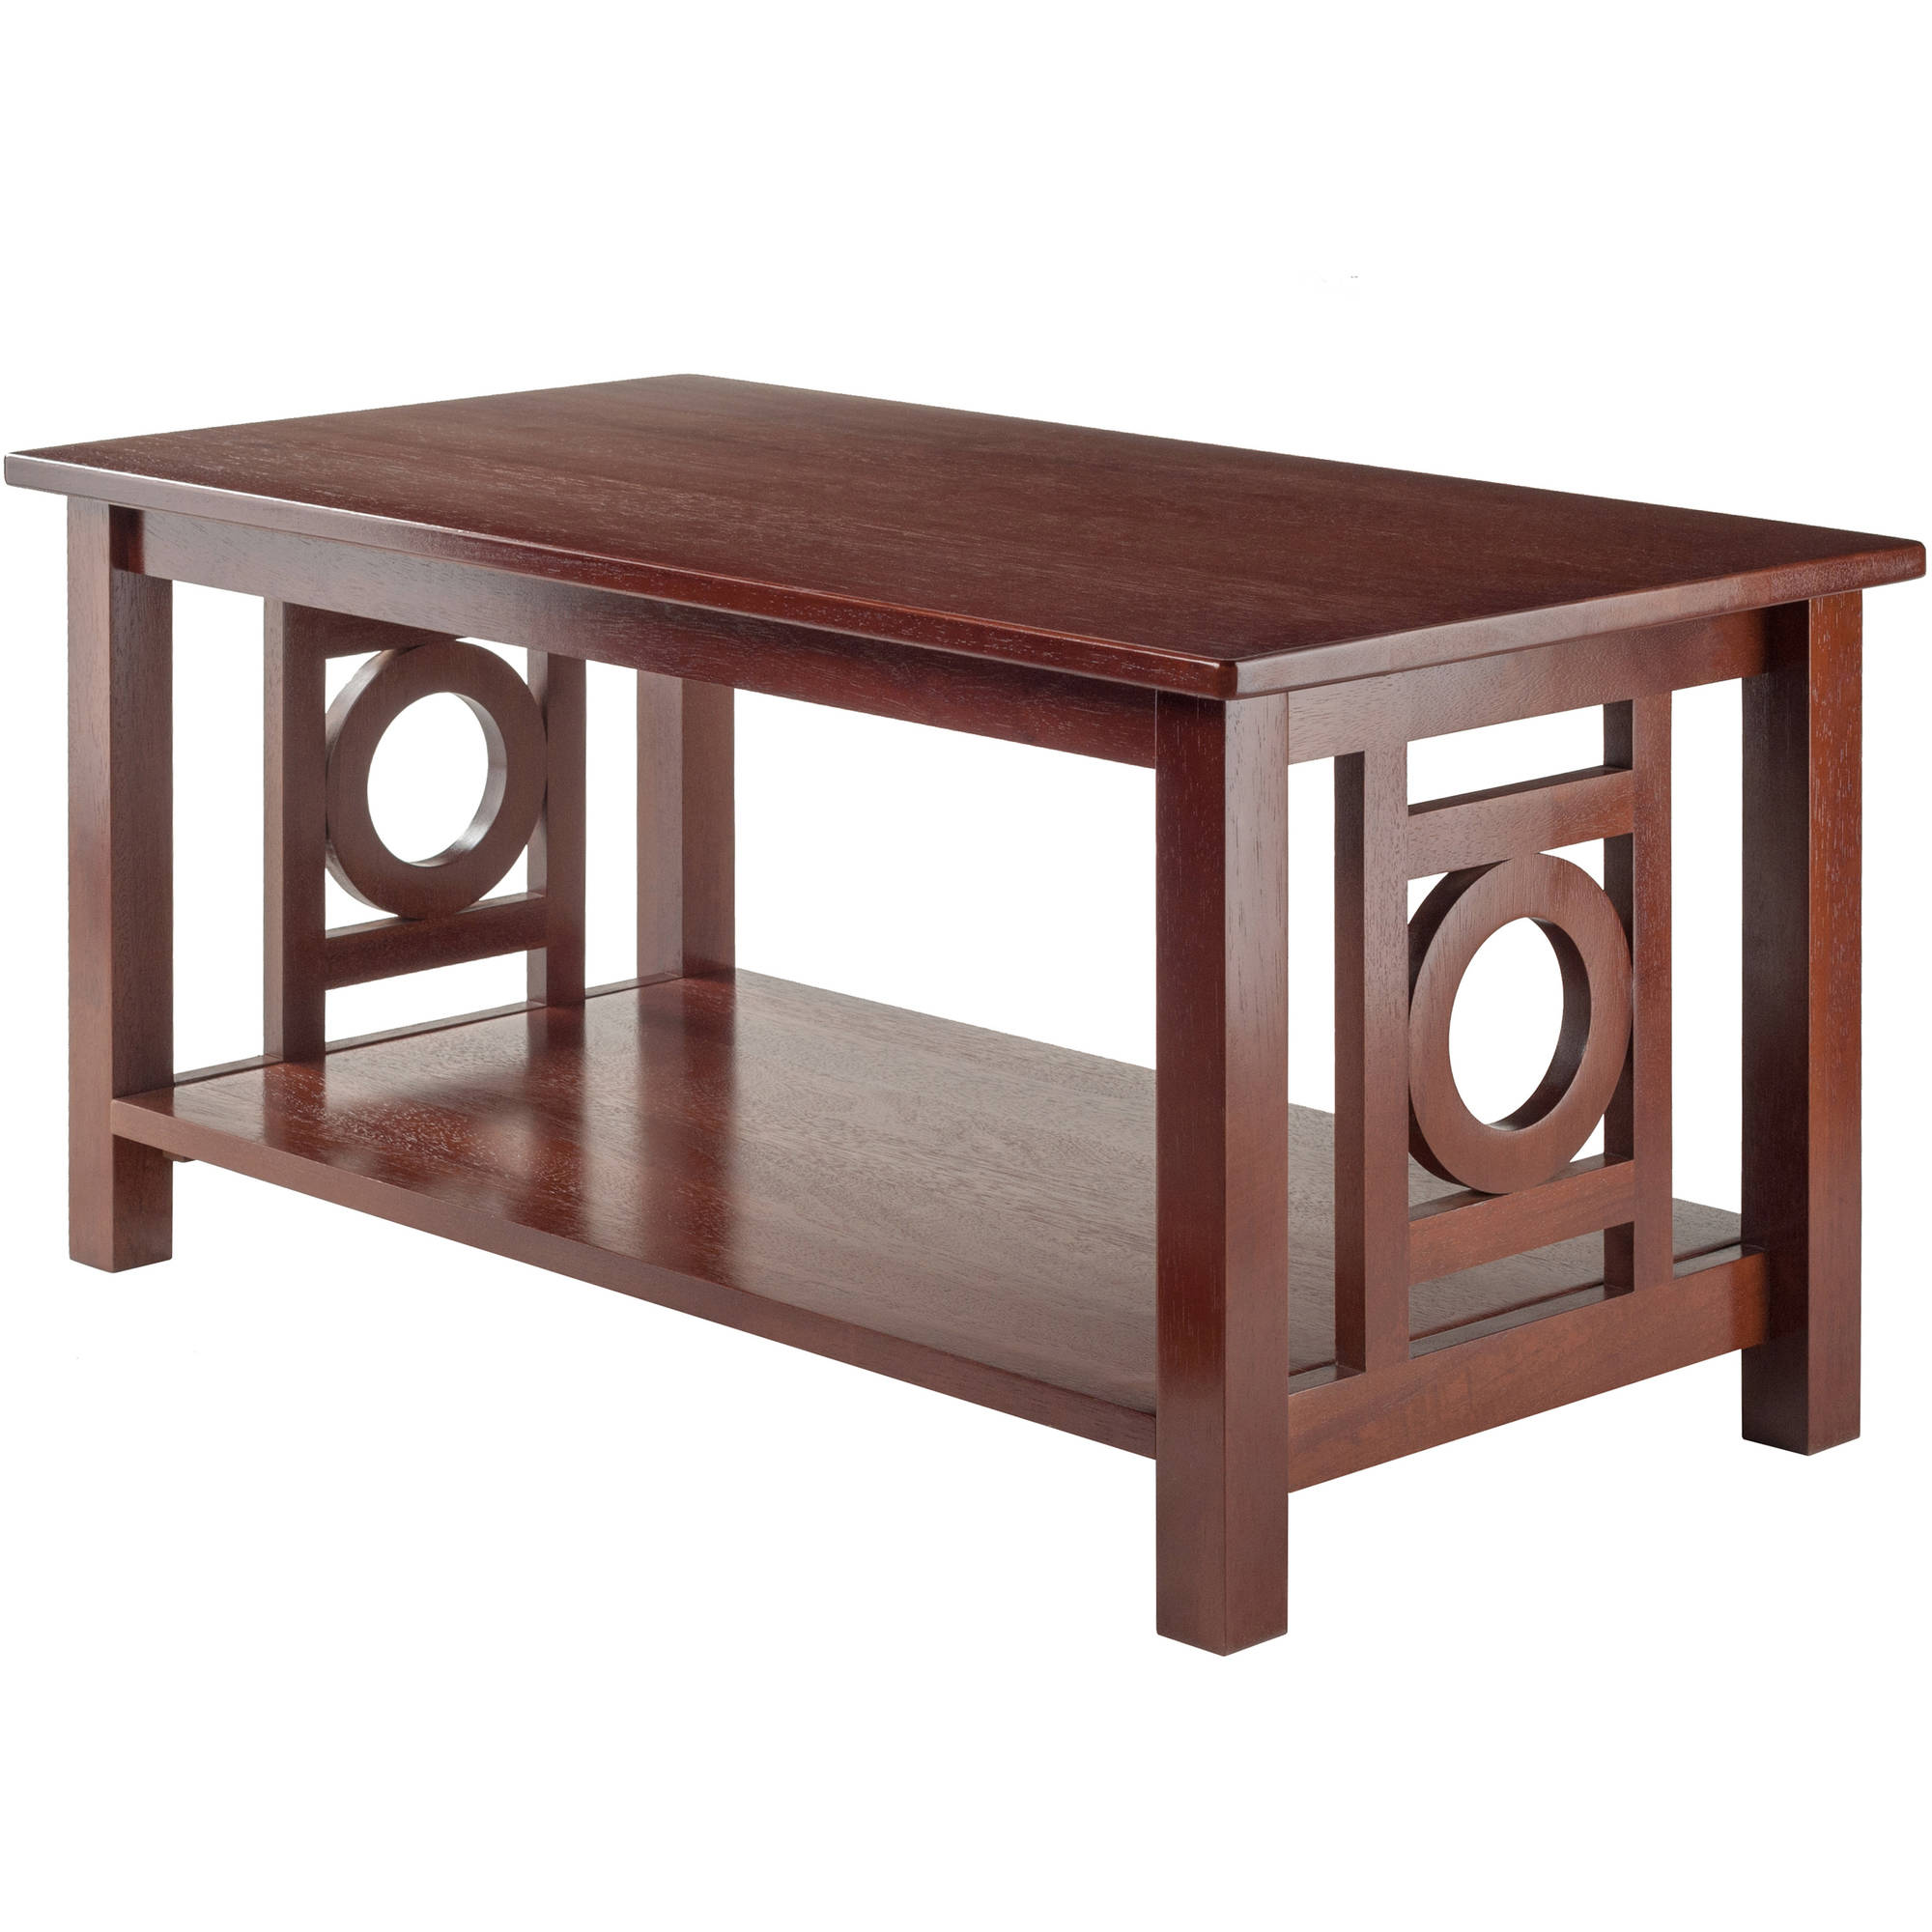 Walmart Coffee Tables: Winsome Wood Ollie Coffee Table, Walnut Finish